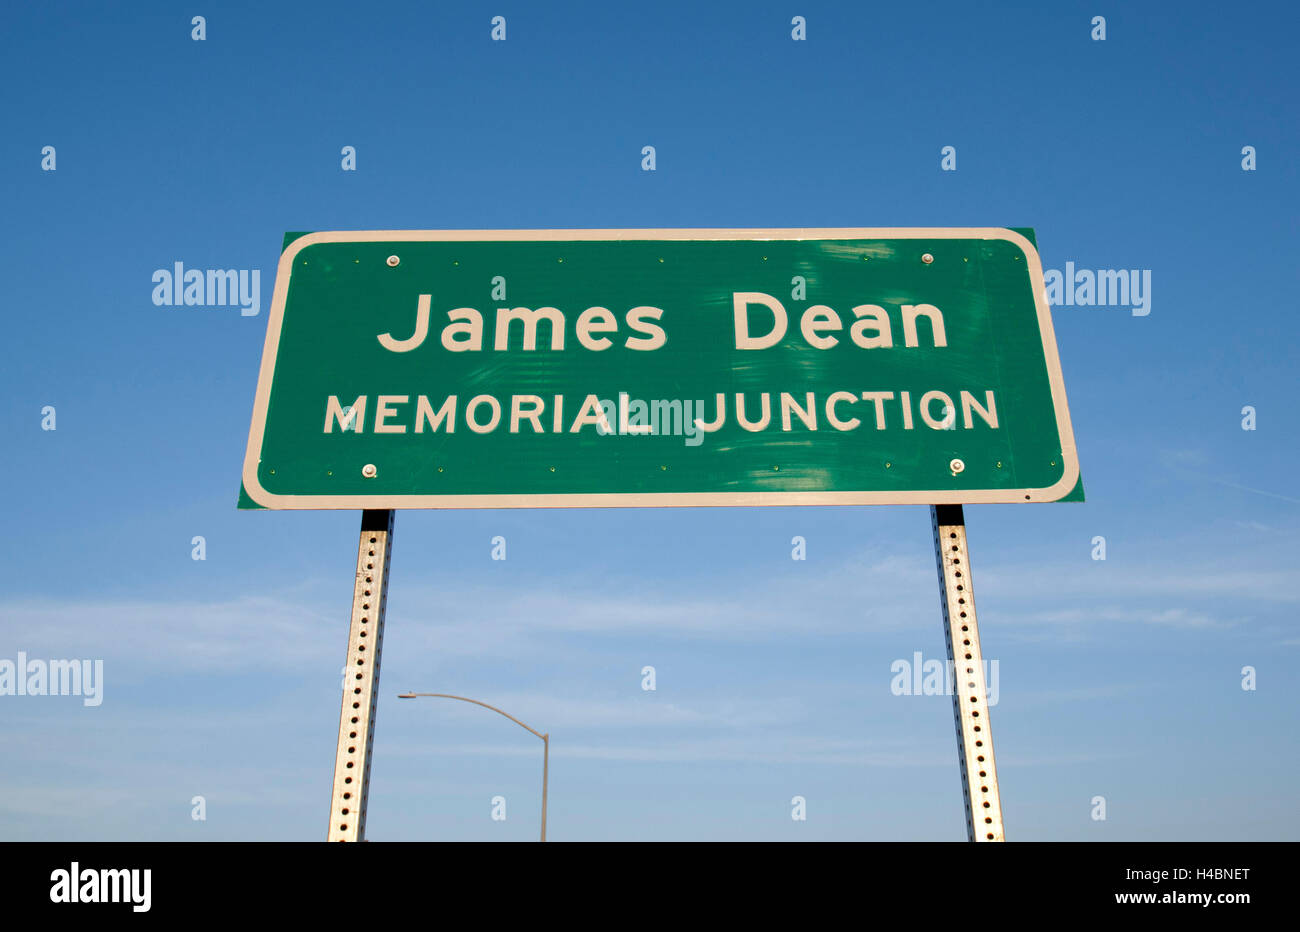 James Dean Memorial Junction of California Highways 41 & 46 where the actor died on September 30, 1955.  Cholame, - Stock Image